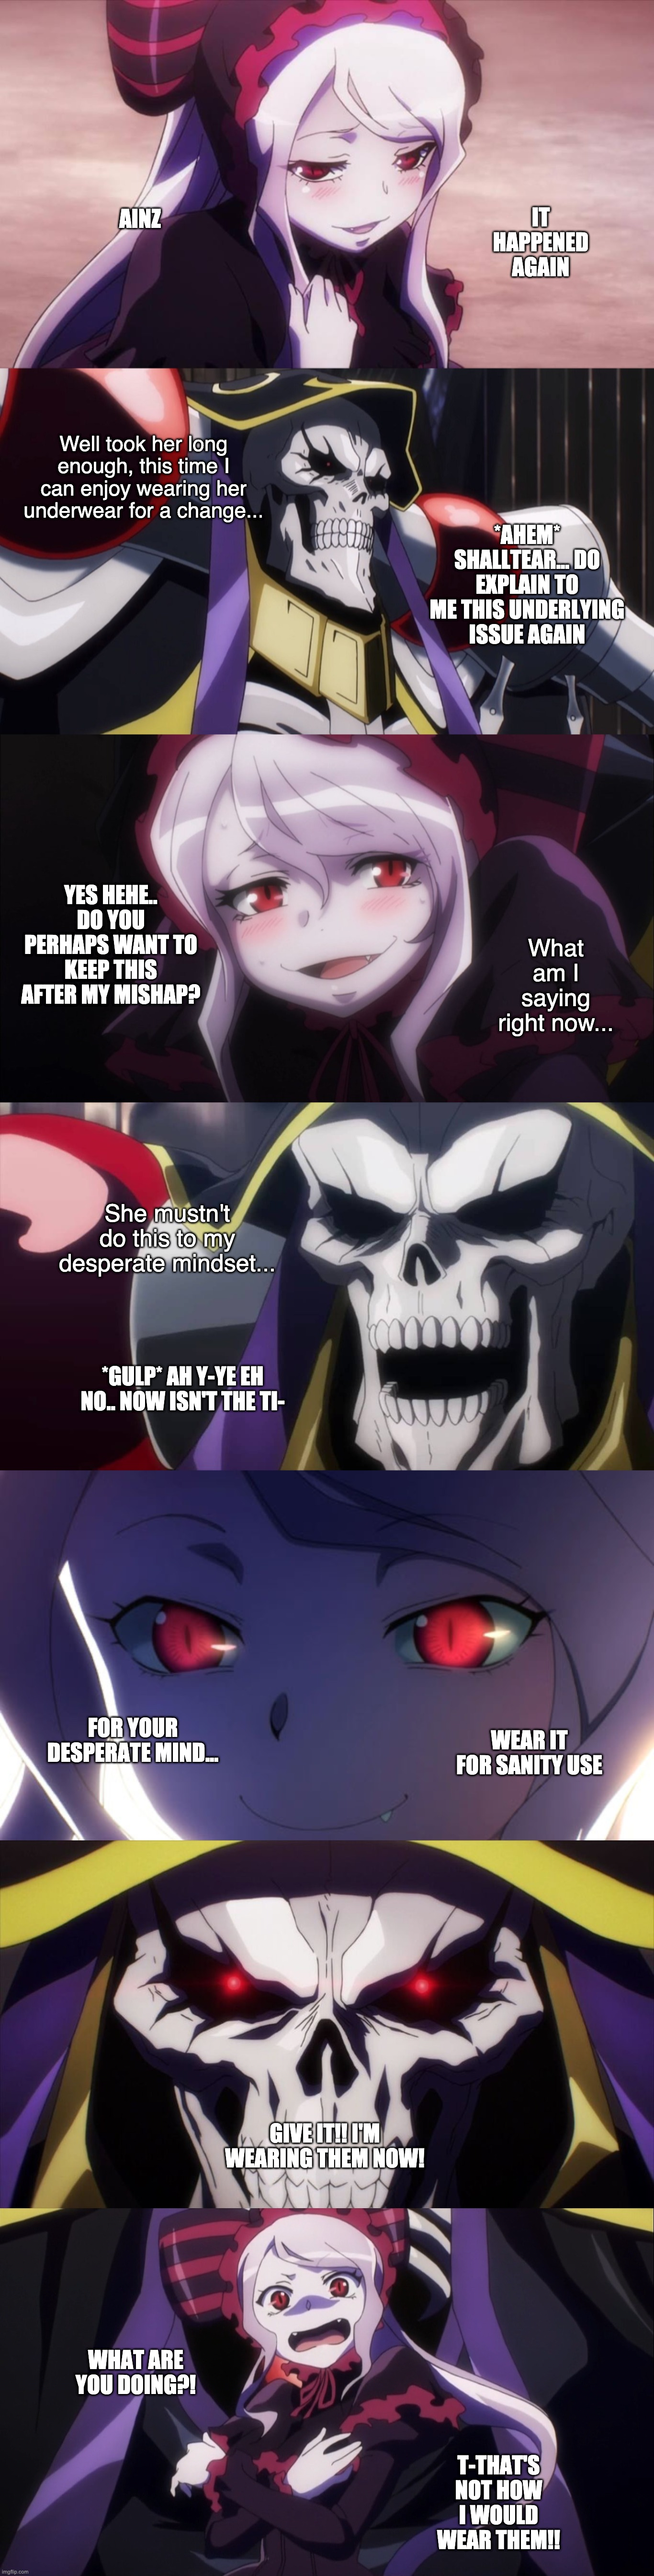 Give it!! I'm wearing them now! |  IT HAPPENED AGAIN; AINZ; Well took her long enough, this time I can enjoy wearing her underwear for a change... *AHEM* SHALLTEAR... DO EXPLAIN TO ME THIS UNDERLYING ISSUE AGAIN; YES HEHE.. DO YOU PERHAPS WANT TO KEEP THIS AFTER MY MISHAP? What am I saying right now... She mustn't do this to my desperate mindset... *GULP* AH Y-YE EH NO.. NOW ISN'T THE TI-; WEAR IT FOR SANITY USE; FOR YOUR DESPERATE MIND... GIVE IT!! I'M WEARING THEM NOW! WHAT ARE YOU DOING?! T-THAT'S NOT HOW I WOULD WEAR THEM!! | image tagged in overlord,vampire,random,anime,fantasy,fetish | made w/ Imgflip meme maker